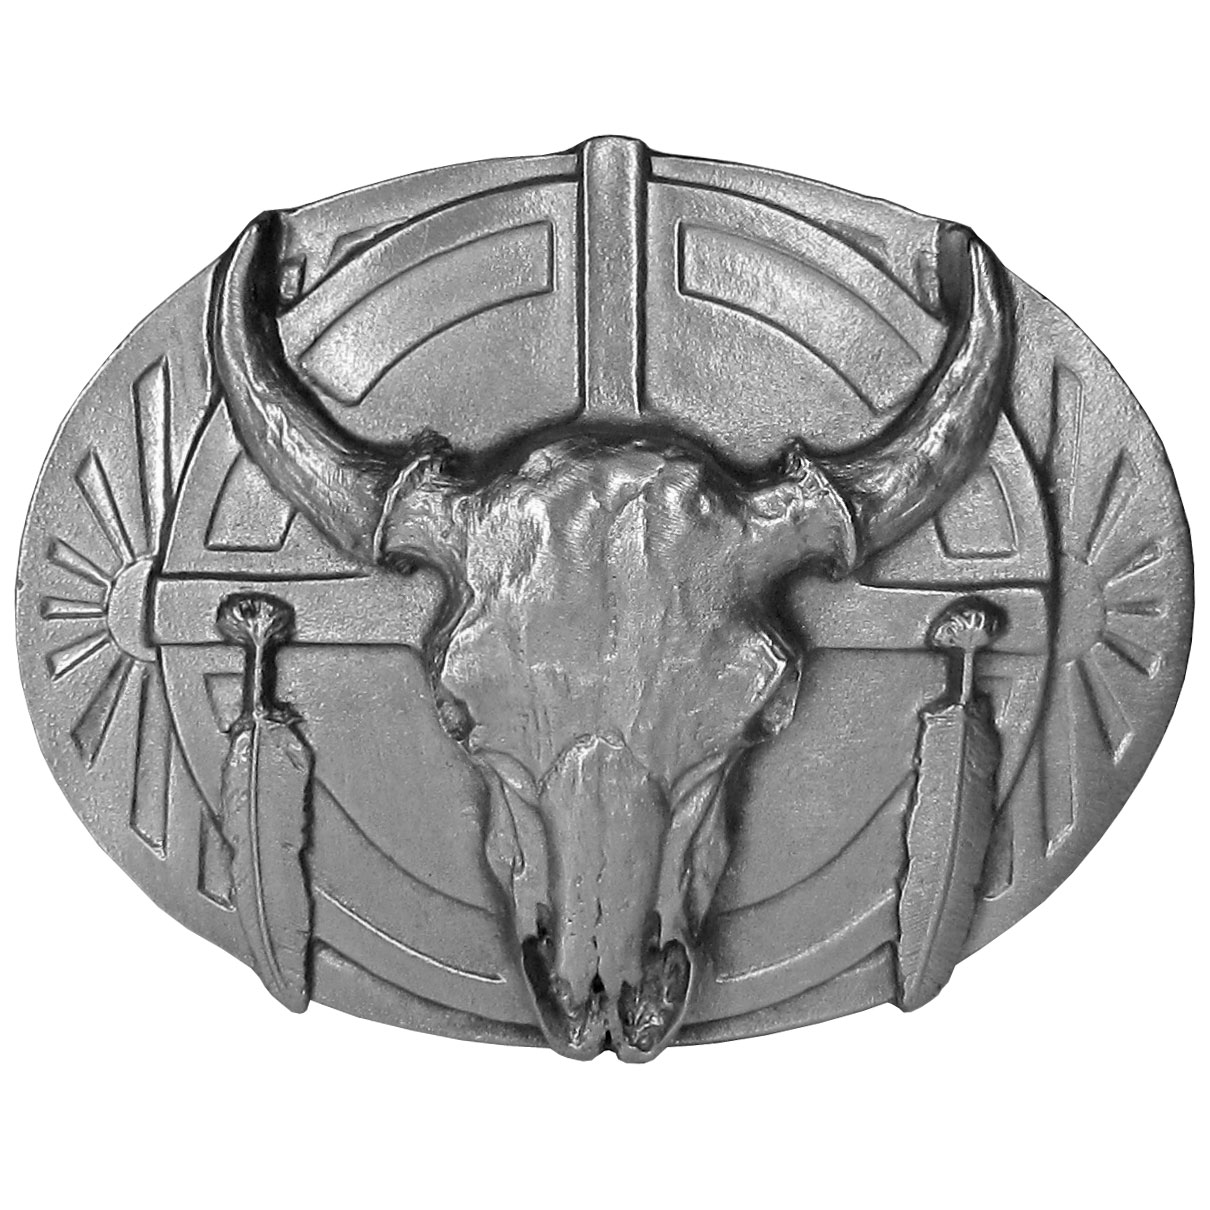 Southwestern Buffalo Skull Enameled Details Siskiyou Automotive KR165E Metal Key Chain